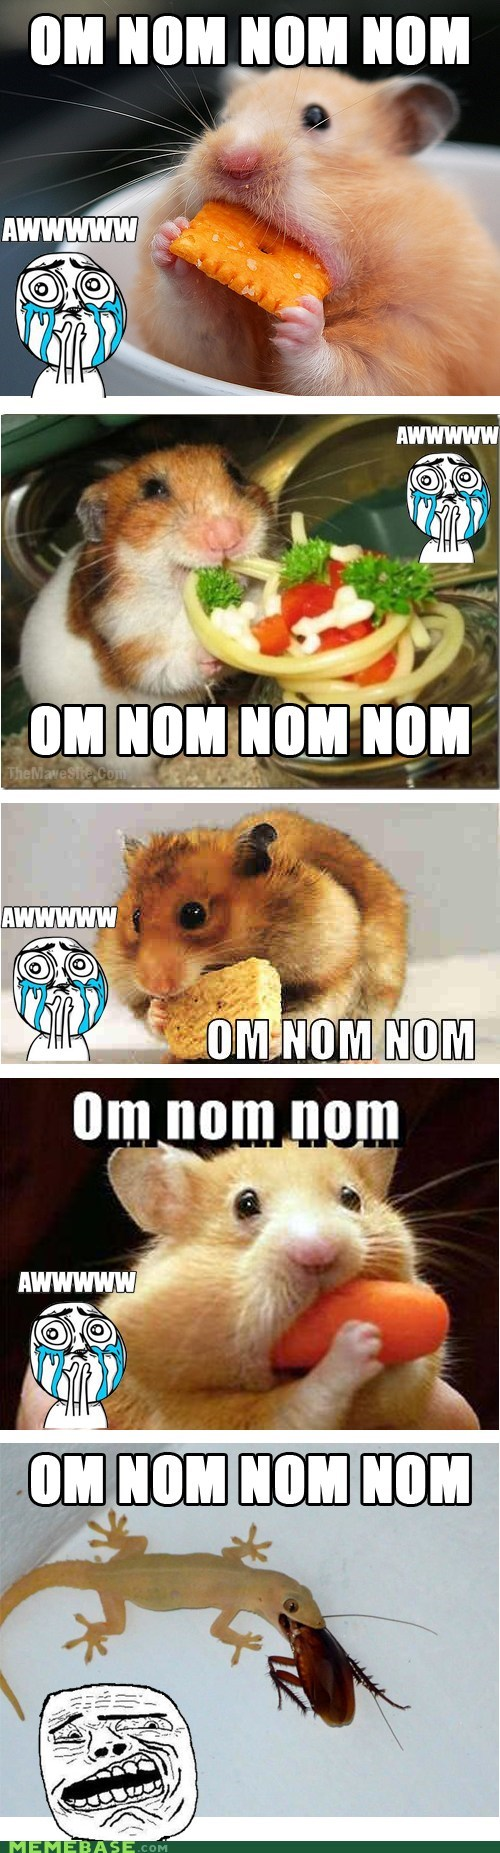 aw bugs cheese hamsters lizard Memes mice om nom nom sweet terror - 6392658688